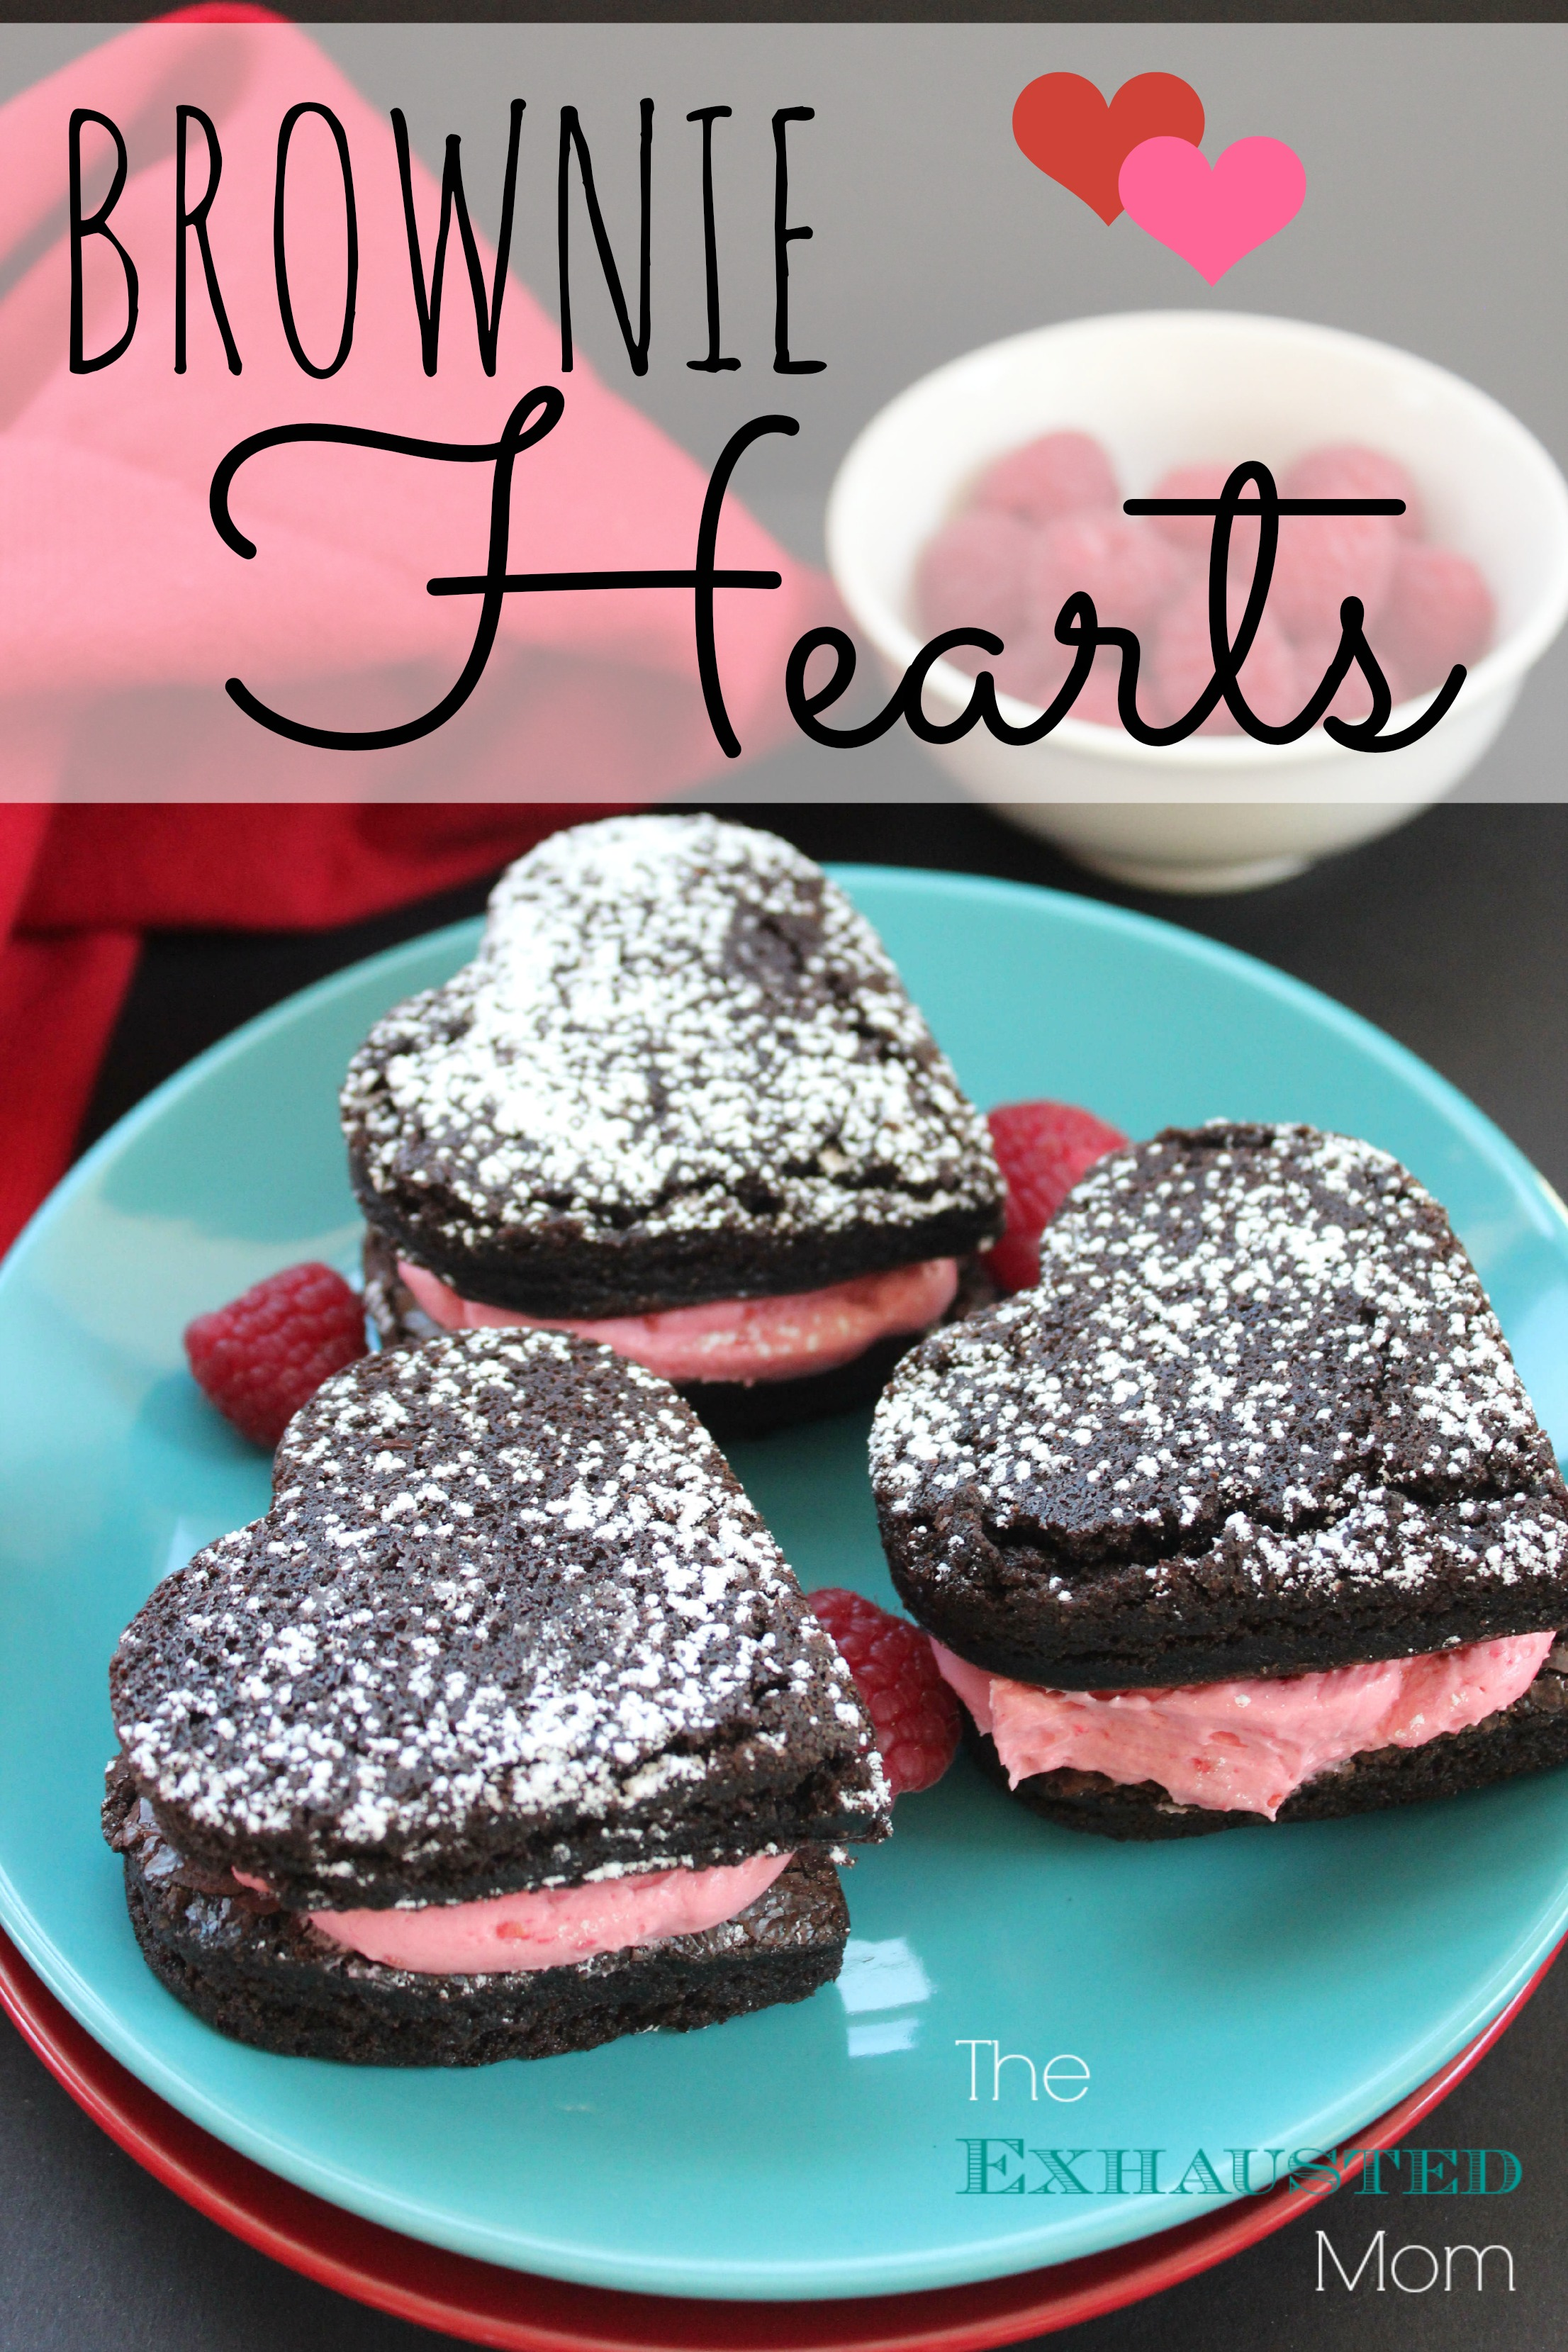 Make Valentine's Day special with Brownie Hearts.